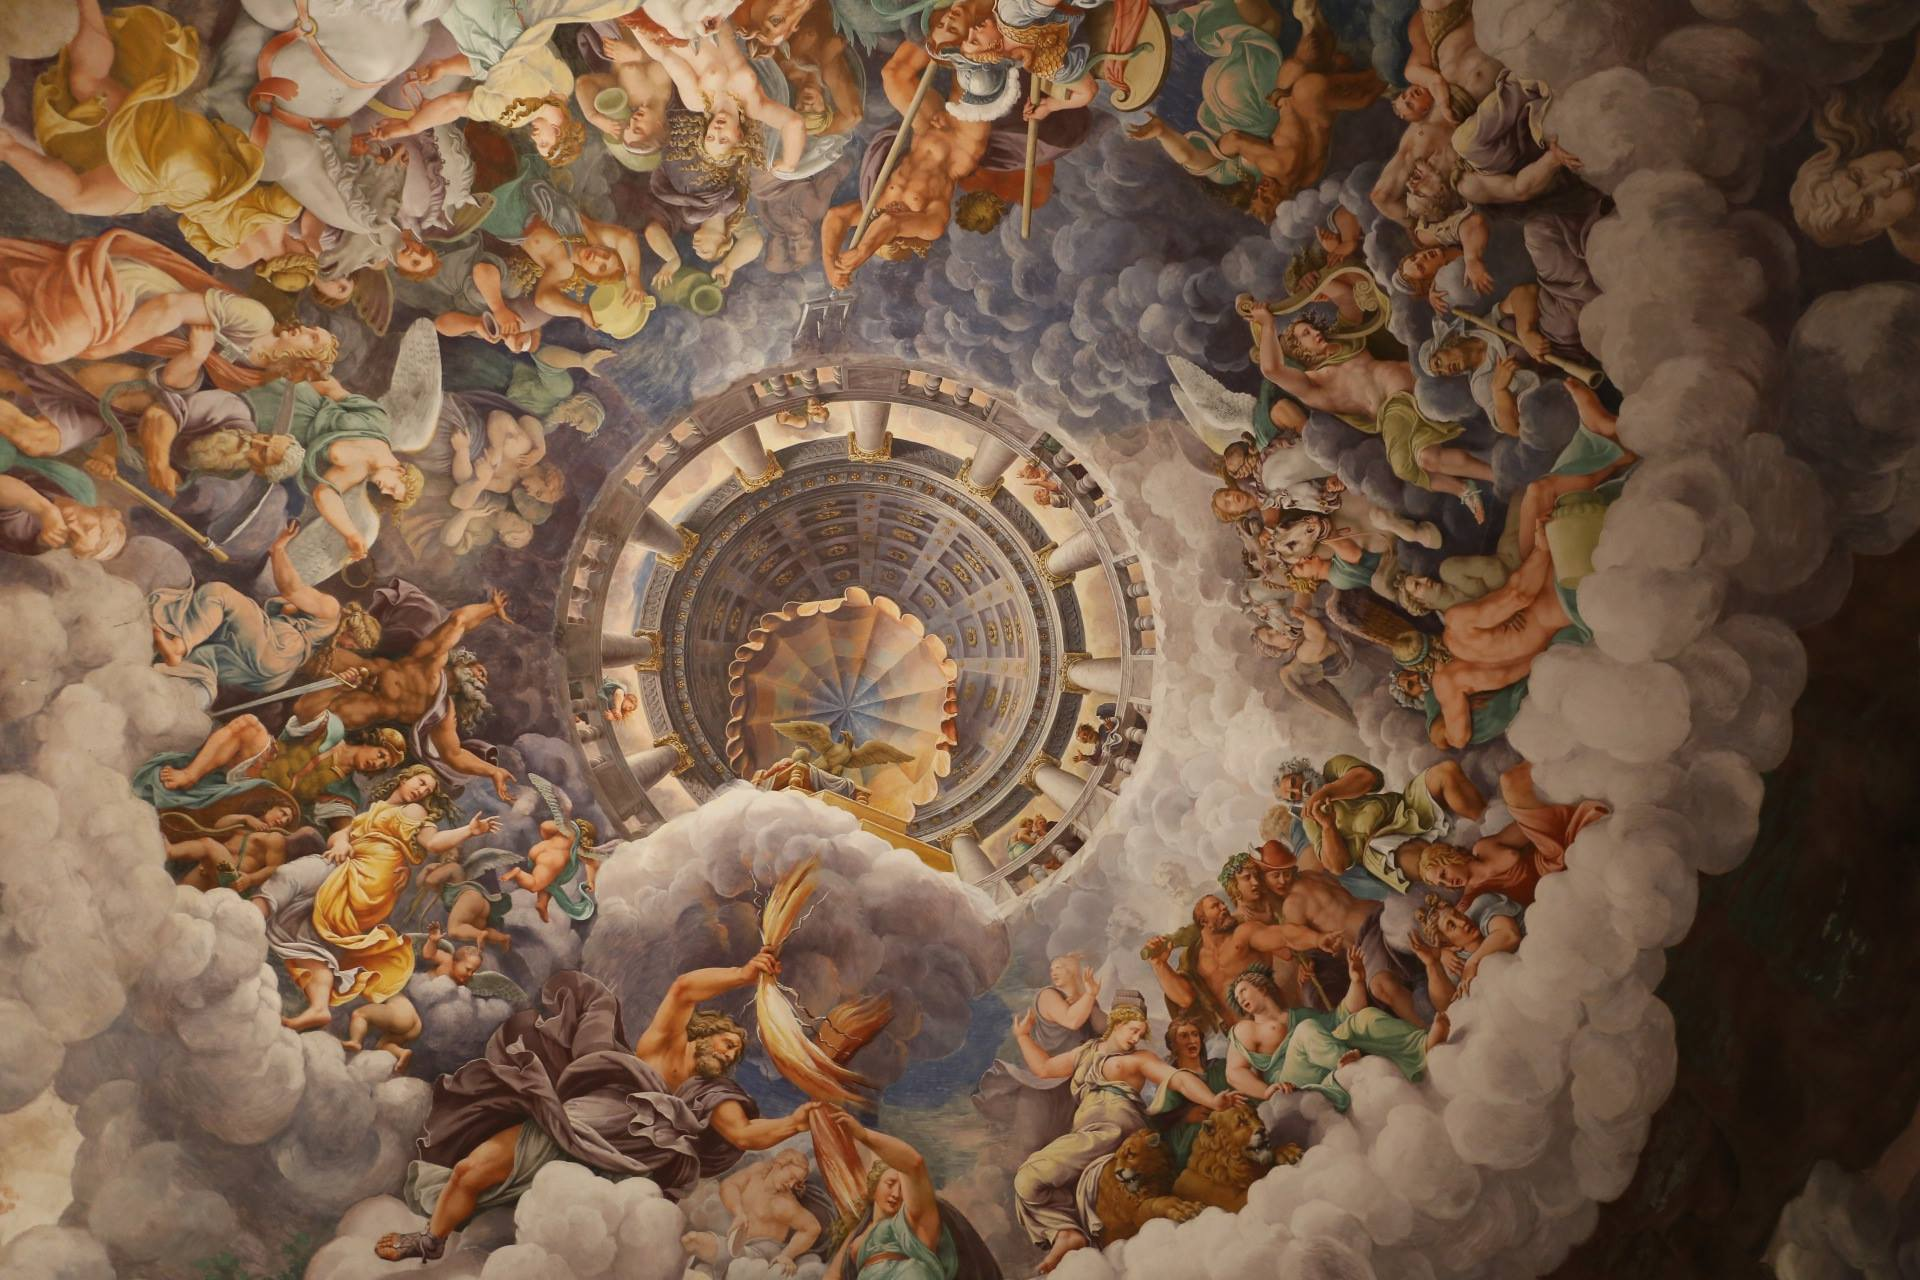 Photo of the domed ceiling of the Palazzo del Te in Italy, painted to tell the Greek legend of the giants' removal from Olympus.